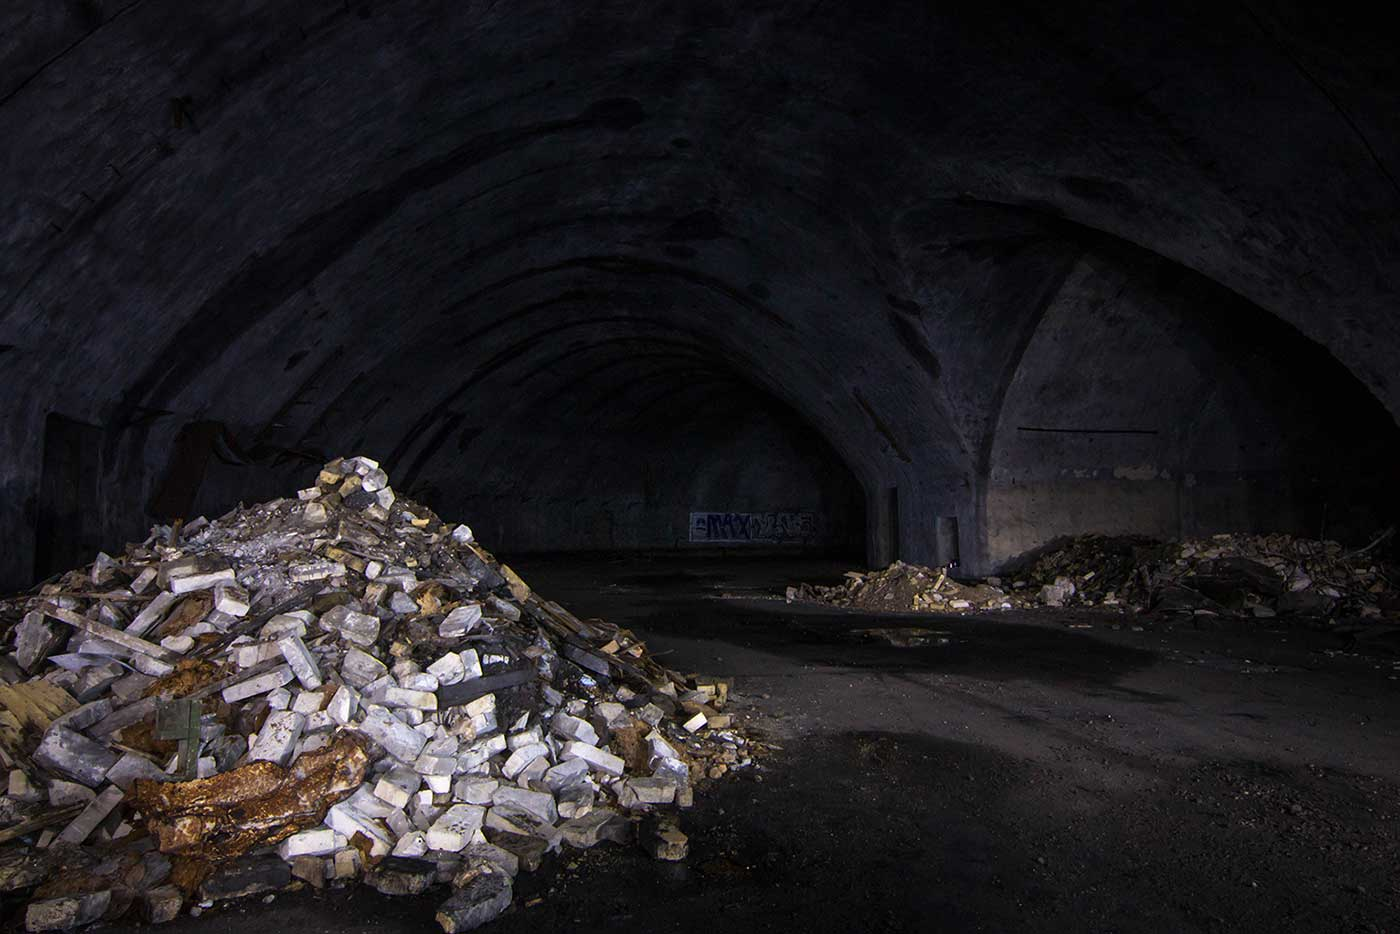 Today the underground aircraft galleries of the Željava Airbase are bare and abandoned, forming a pitch-black labyrinth beneath the mountain.